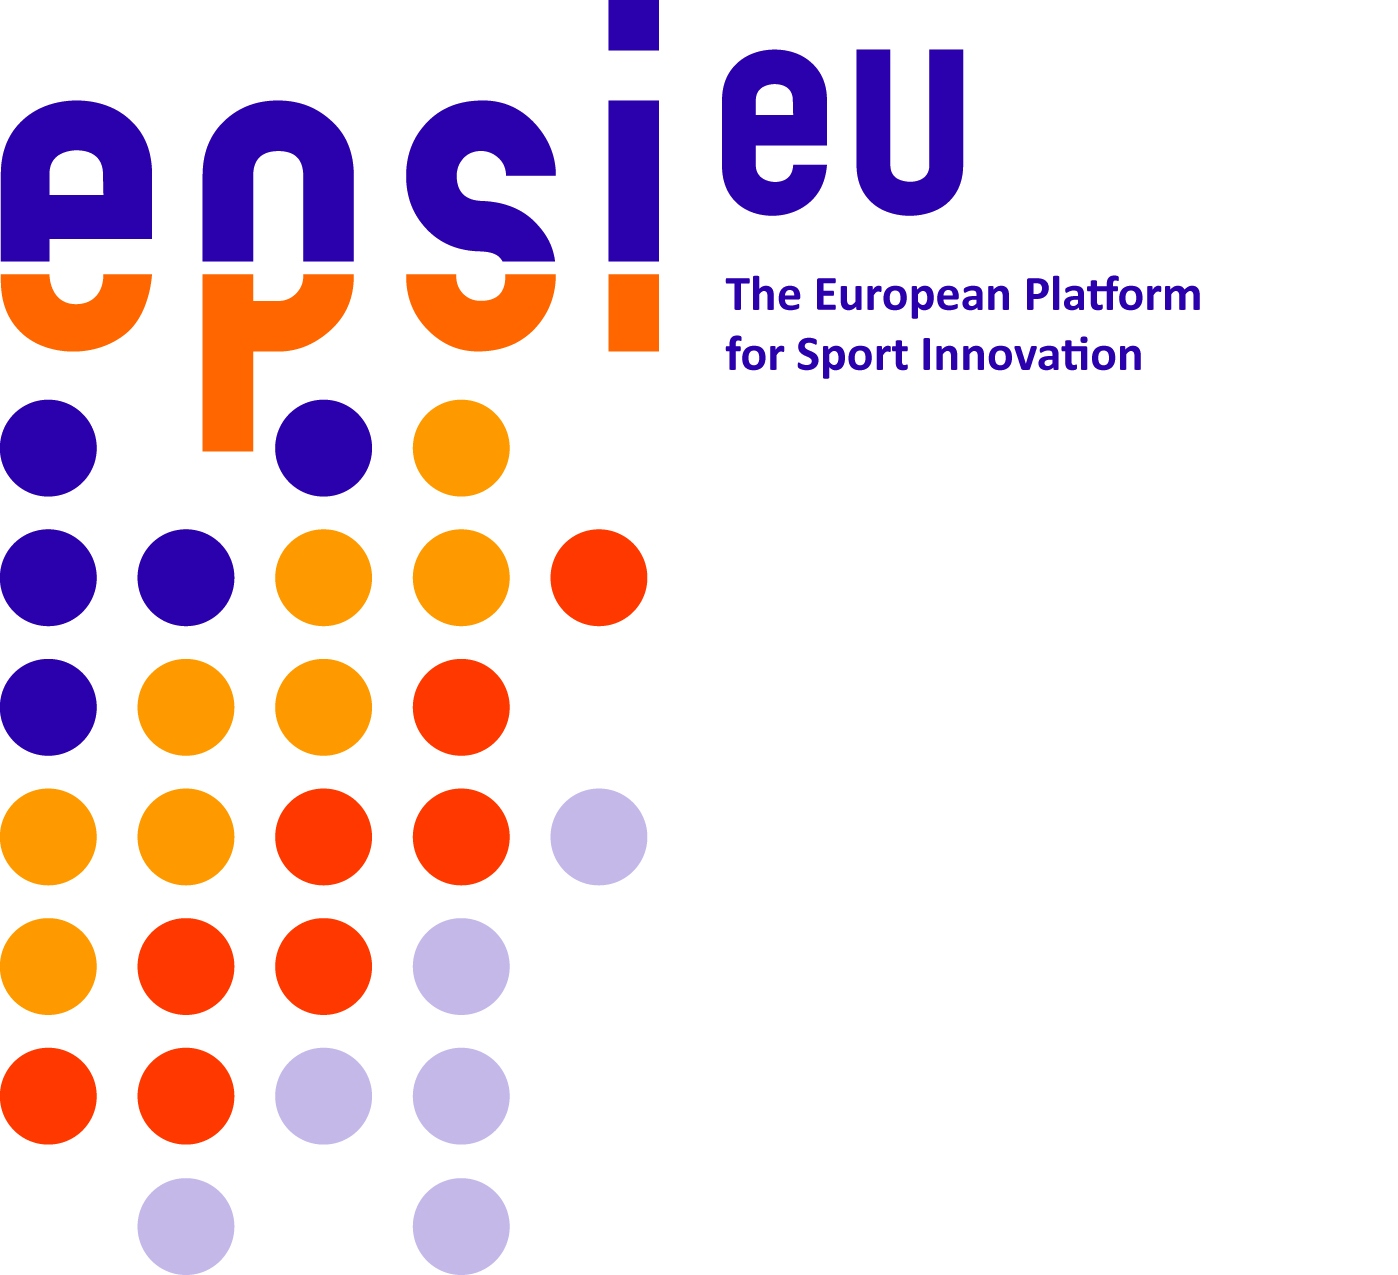 European Platform for Sports Innovation (EPSI) Image